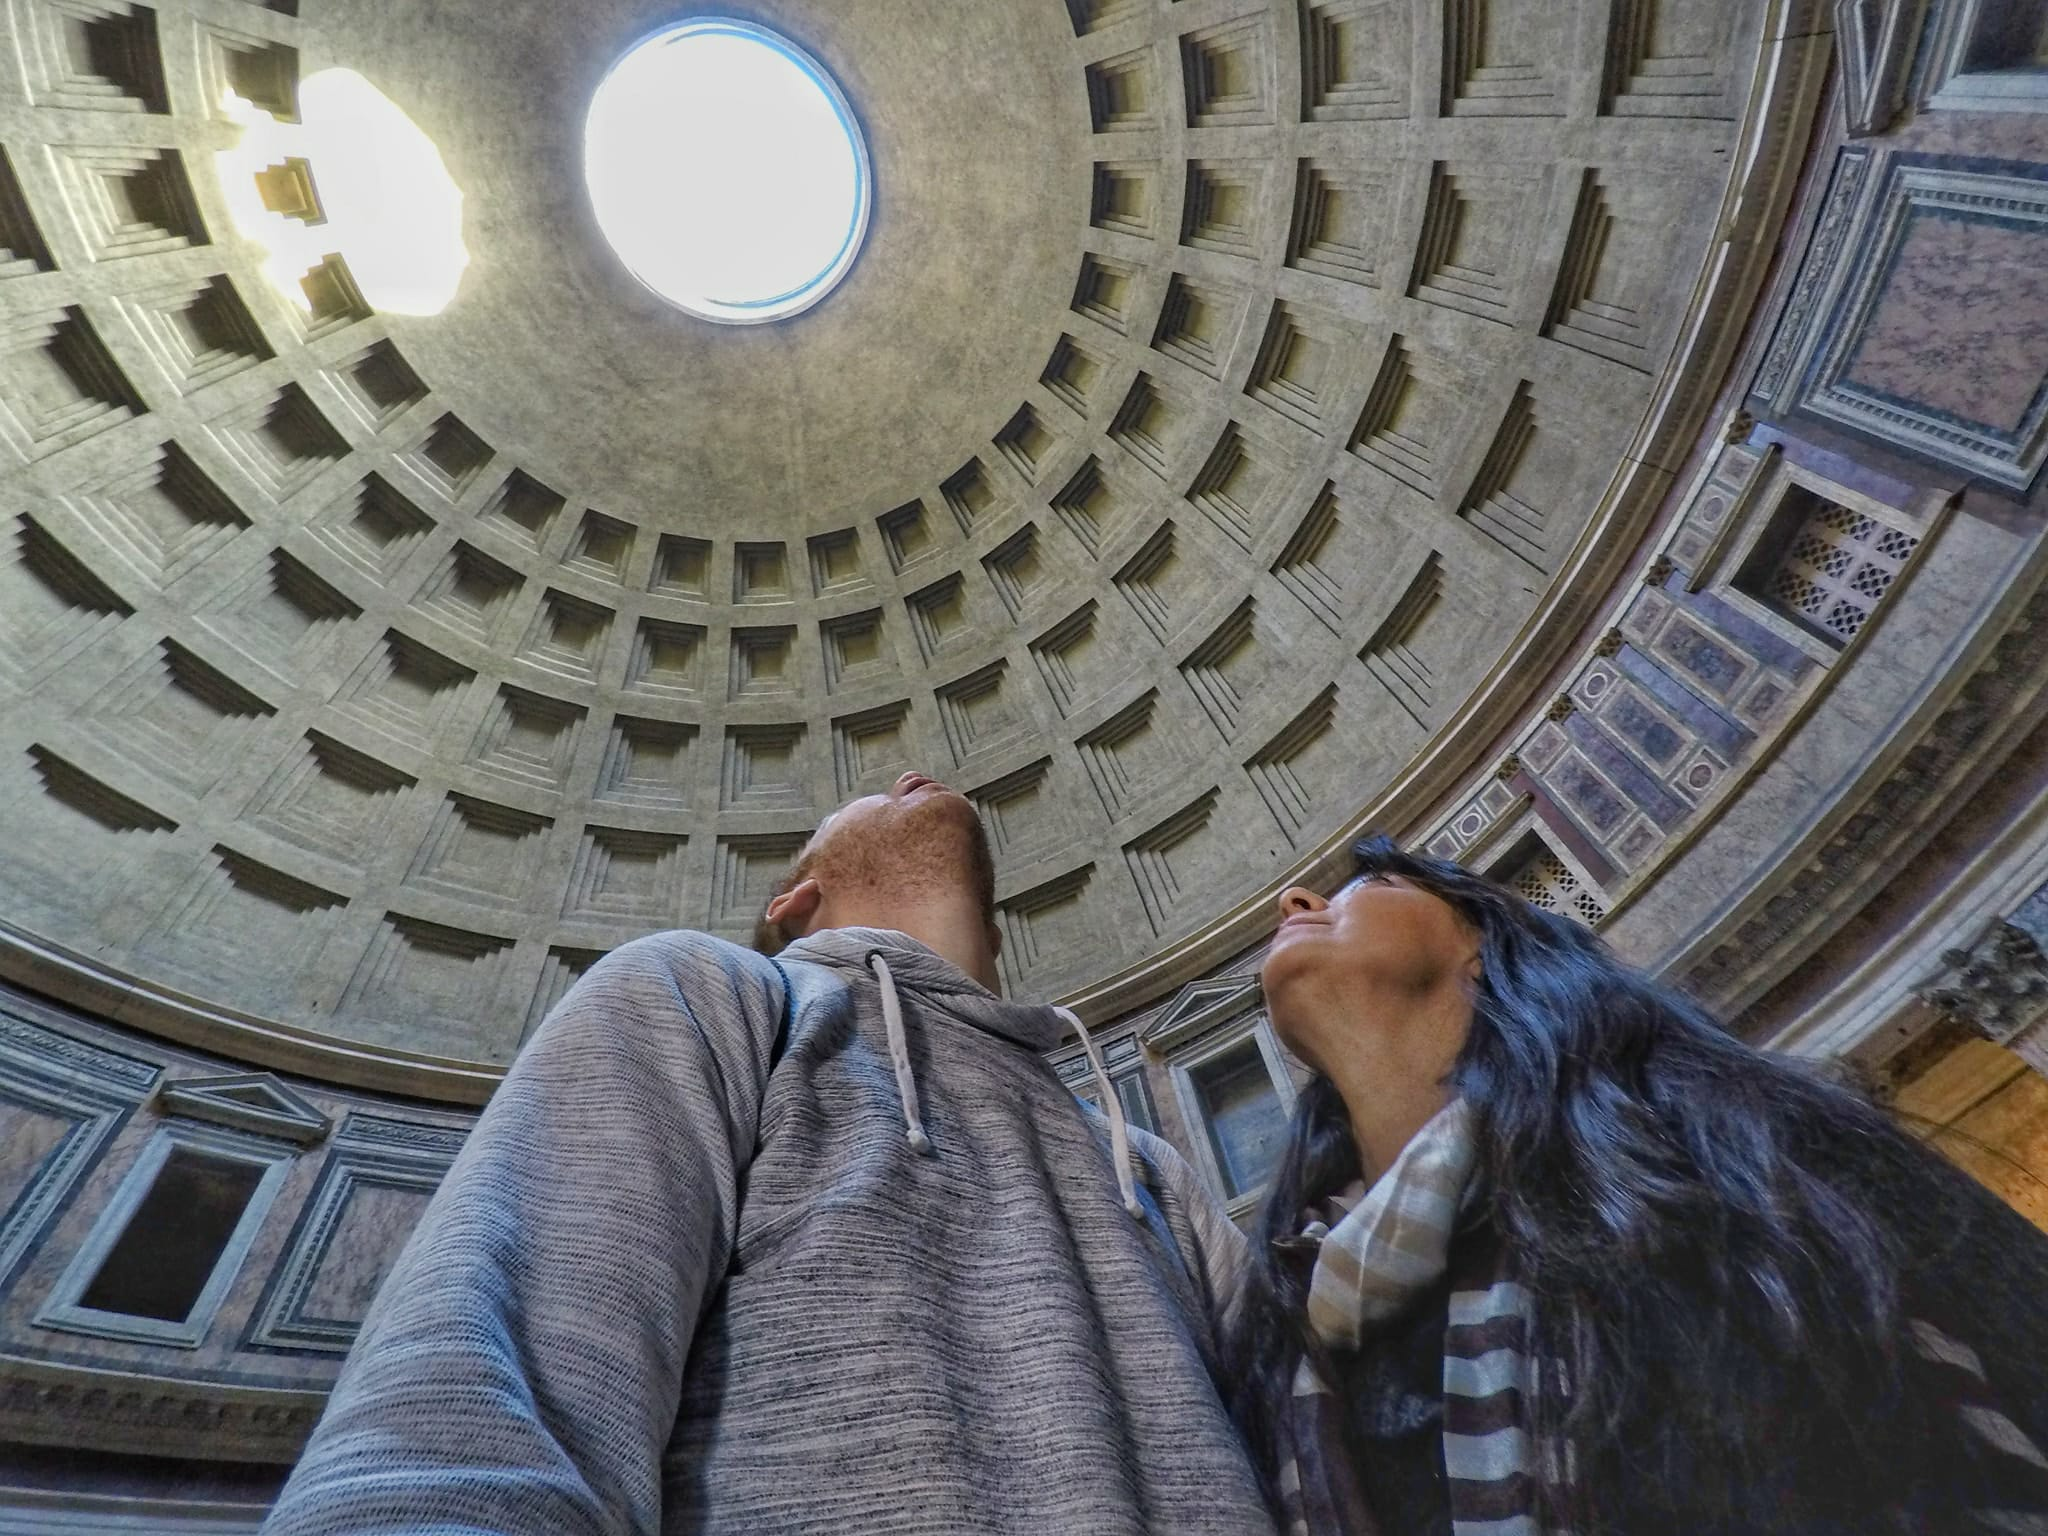 What To See in Rome - Pantheon Interior